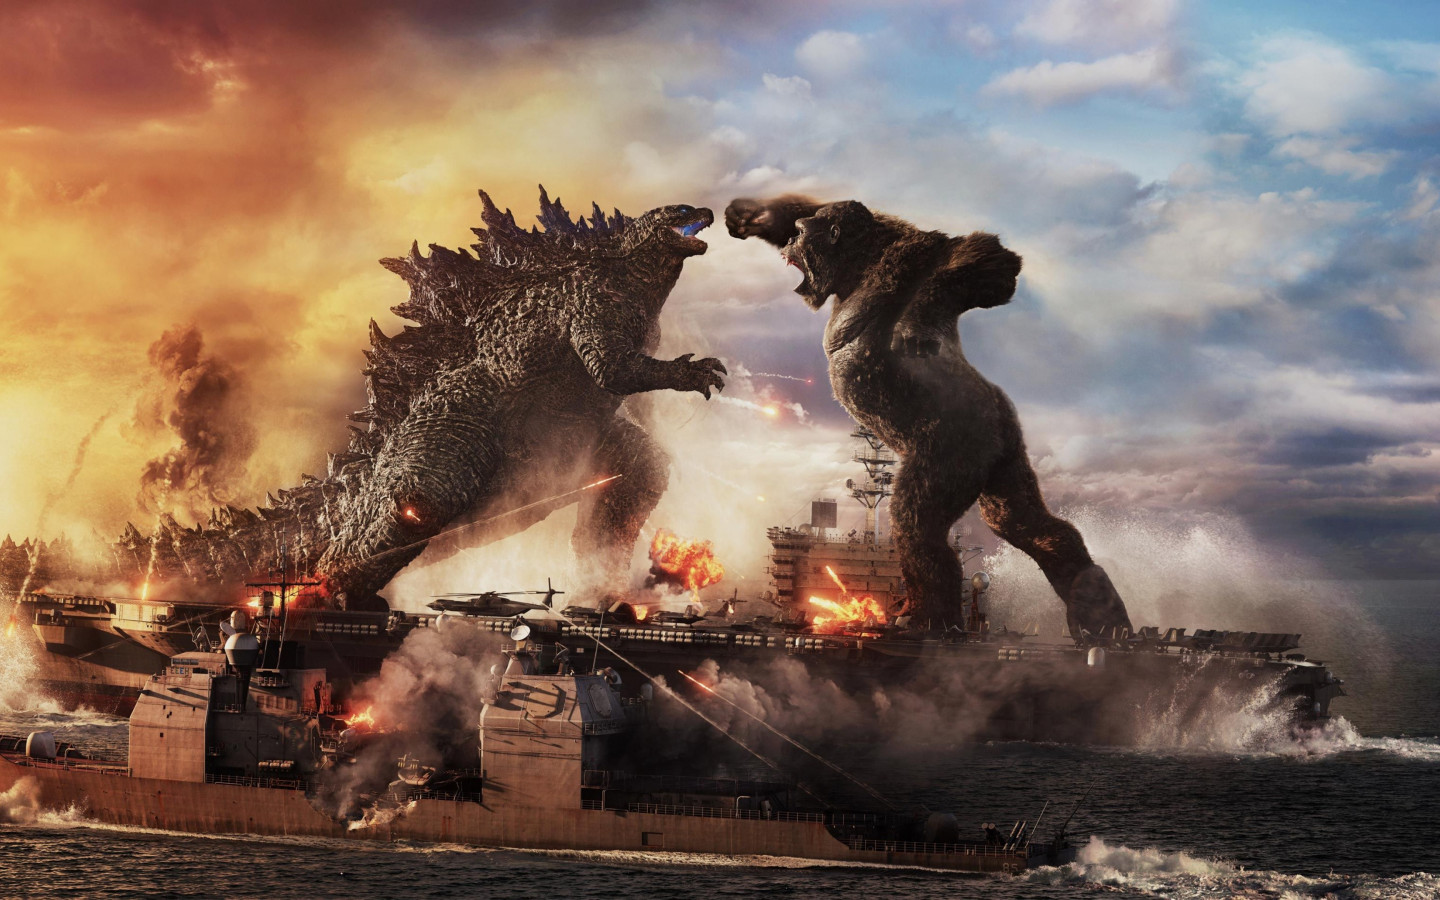 Godzilla vs Kong wallpaper 1440x900